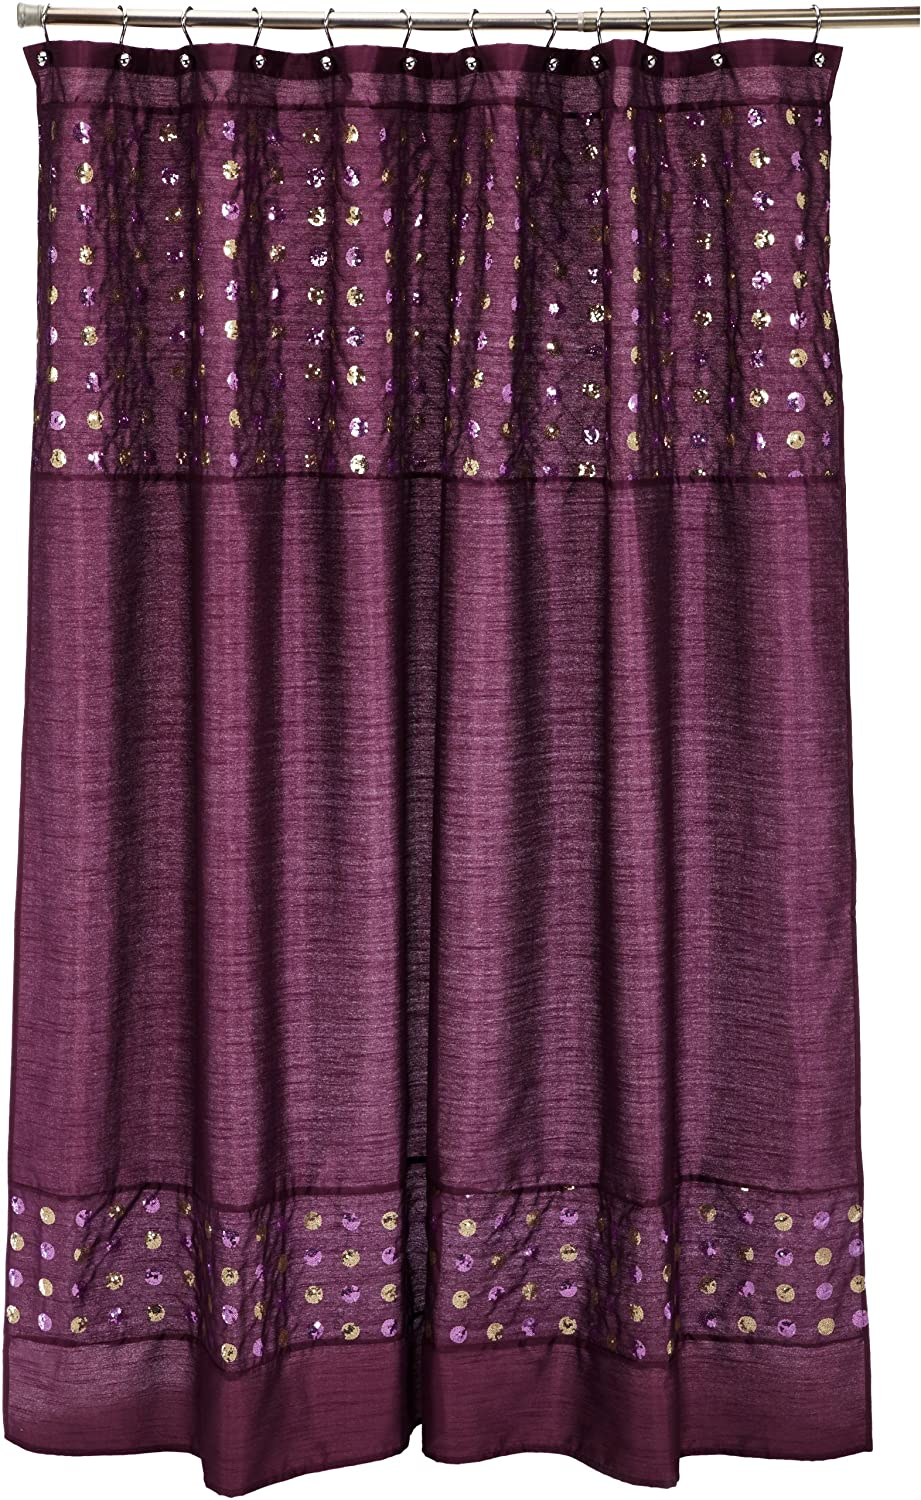 Amazon Popular Bath Sequins Shower Curtain Purple Home Kitchen